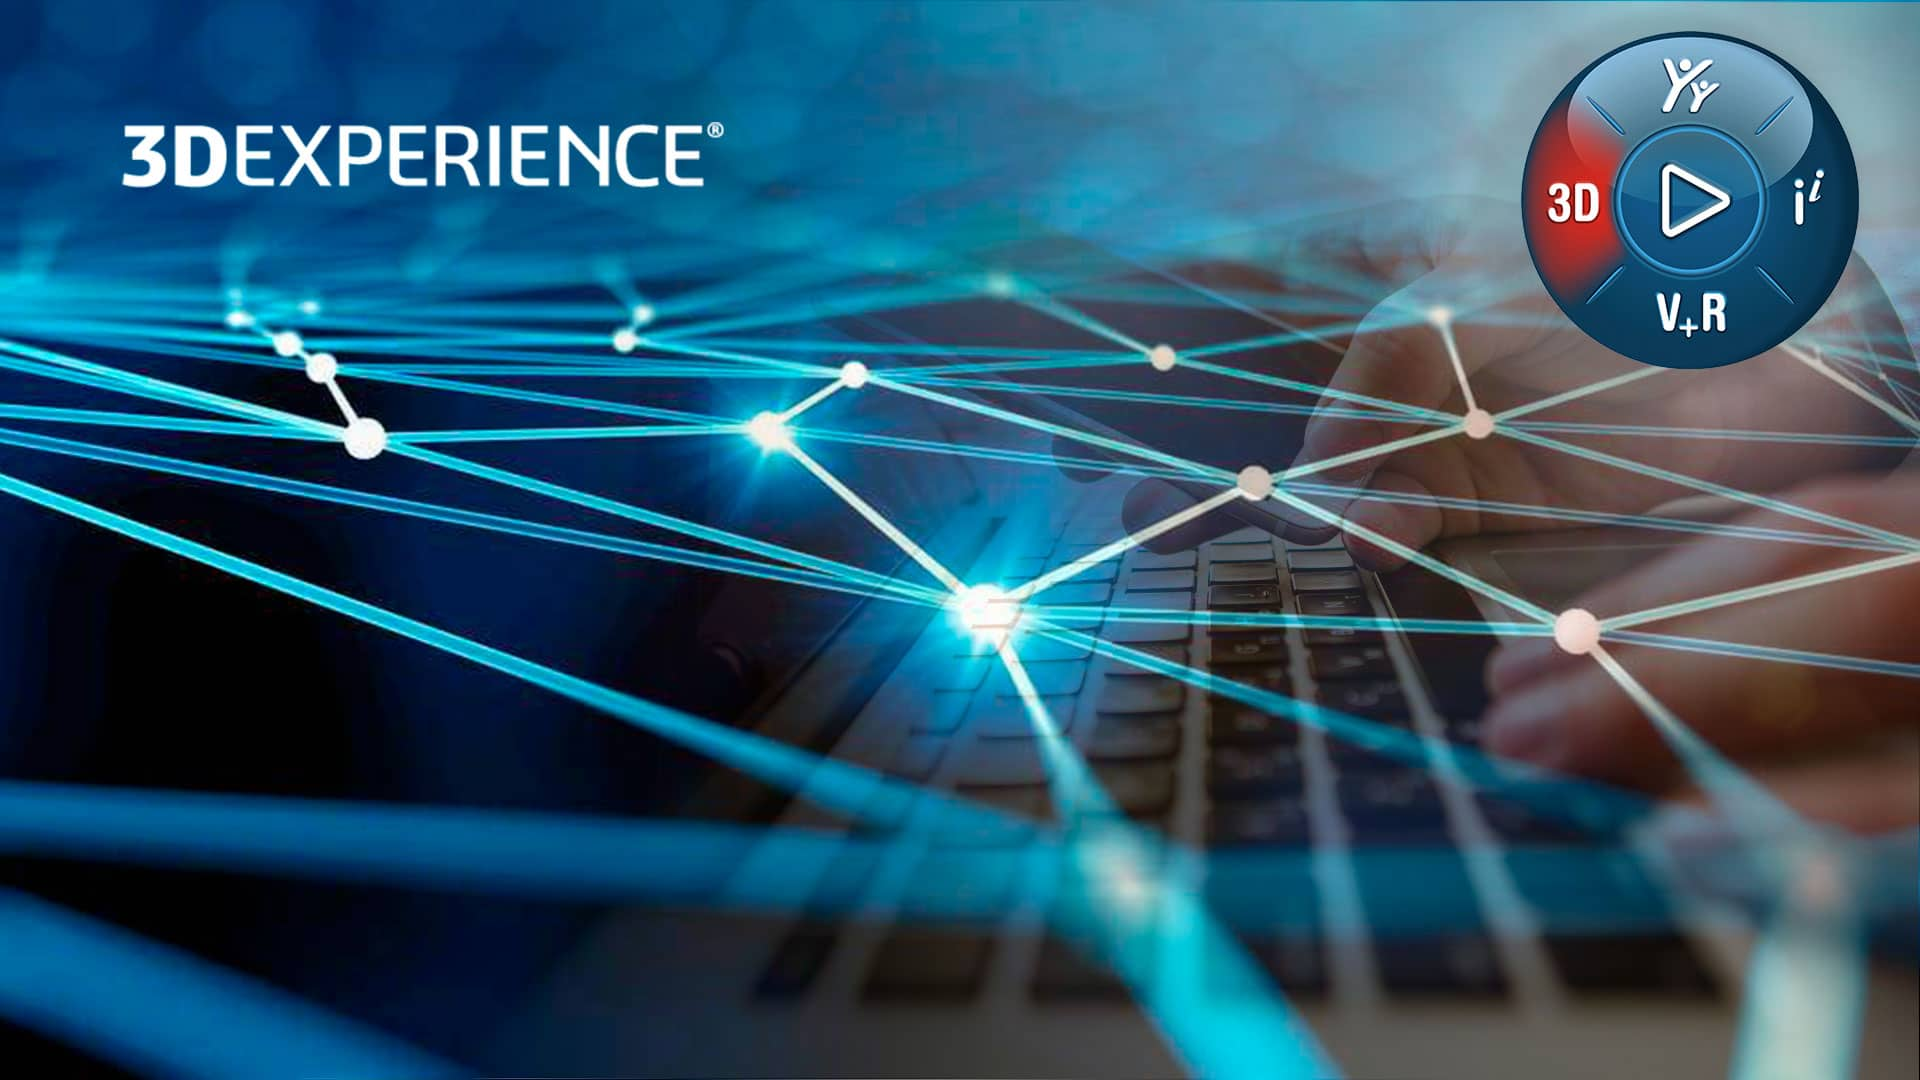 3DExperience connections